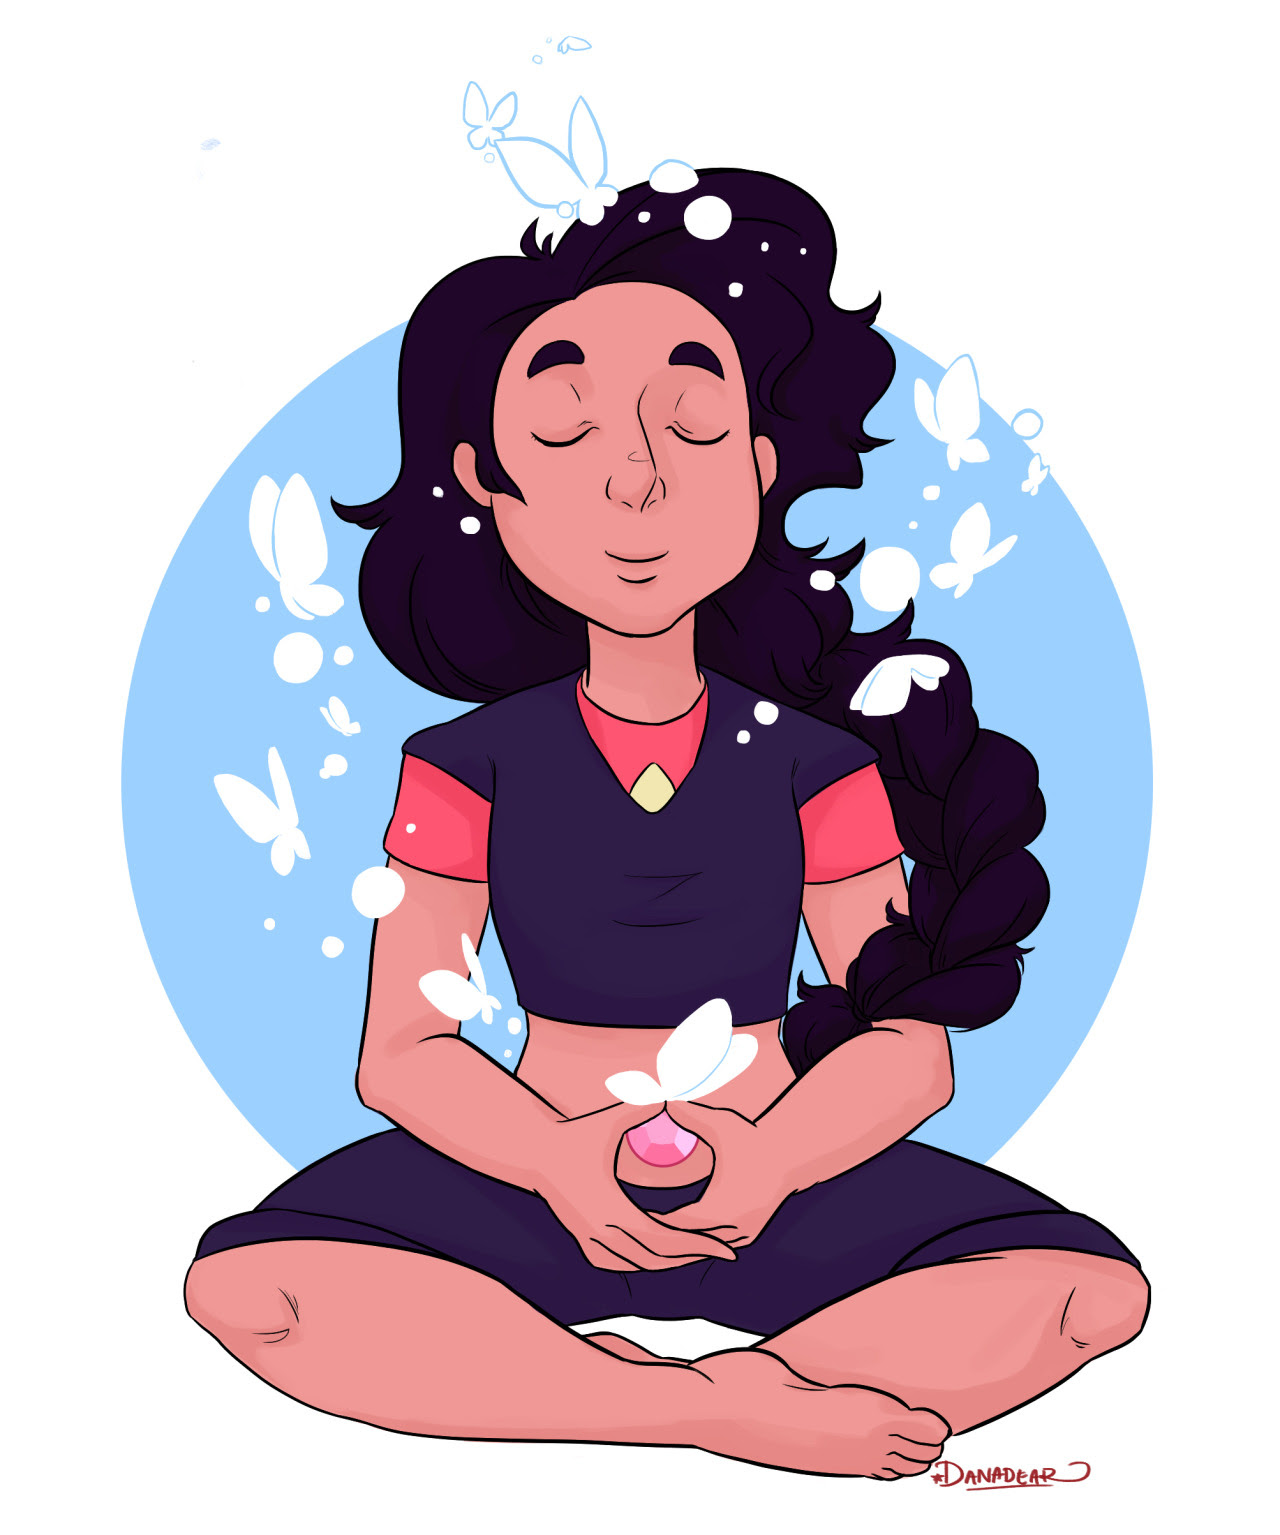 Just a thought ~ Another commission for Kreedence - she's so lovely and I'm so happy I got to draw Stevonnie for her☆